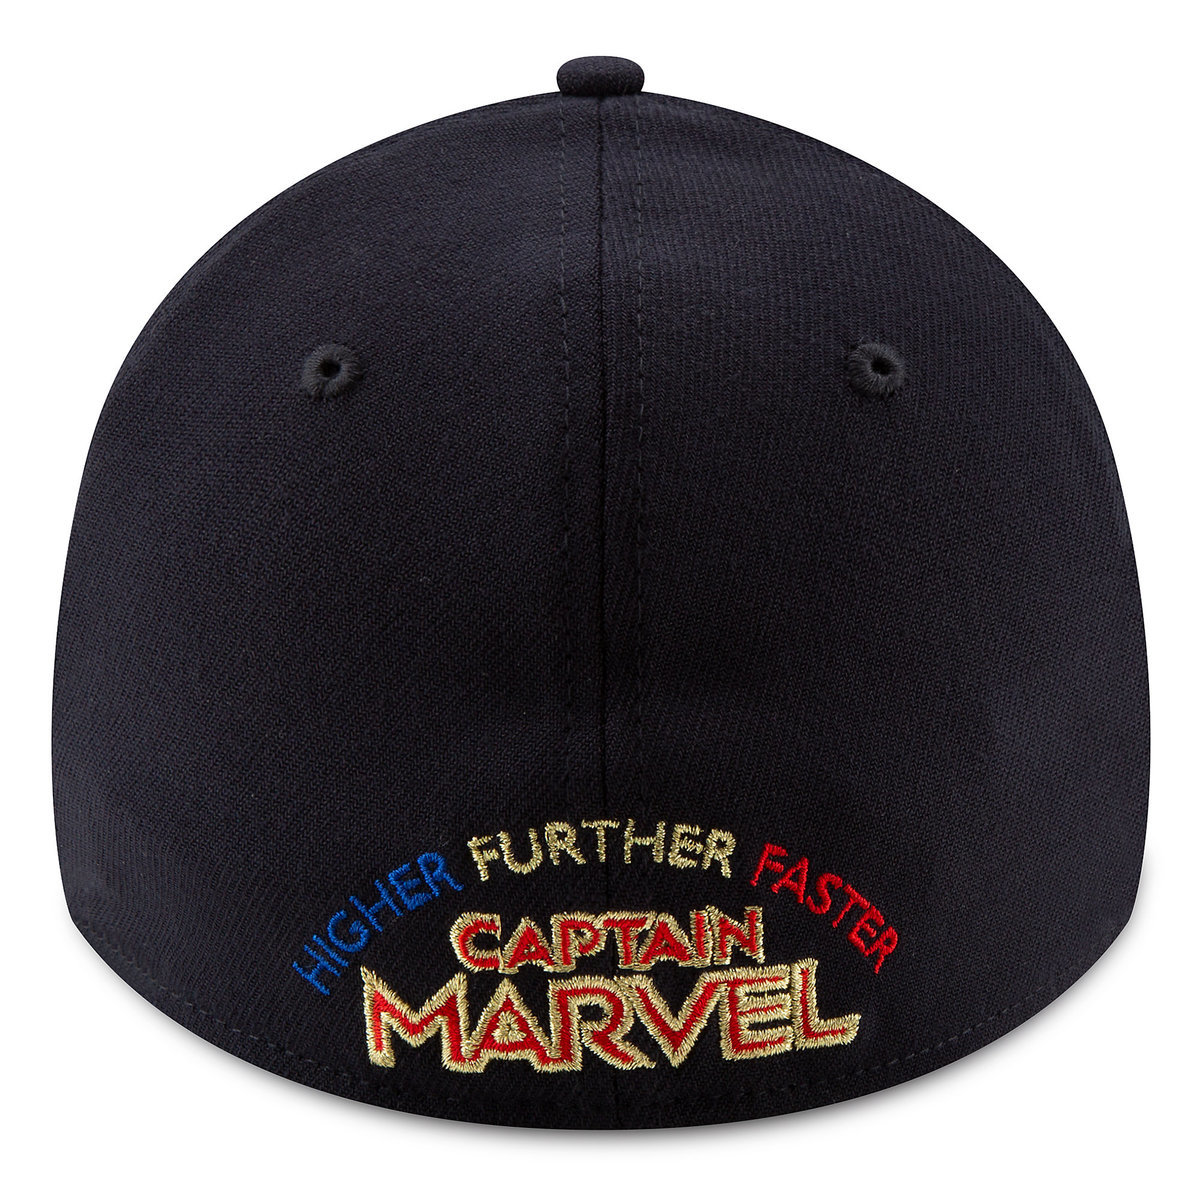 513ce8c10 Product Image of Marvel's Captain Marvel Baseball Cap for Adults by New Era  - Marvel Studios